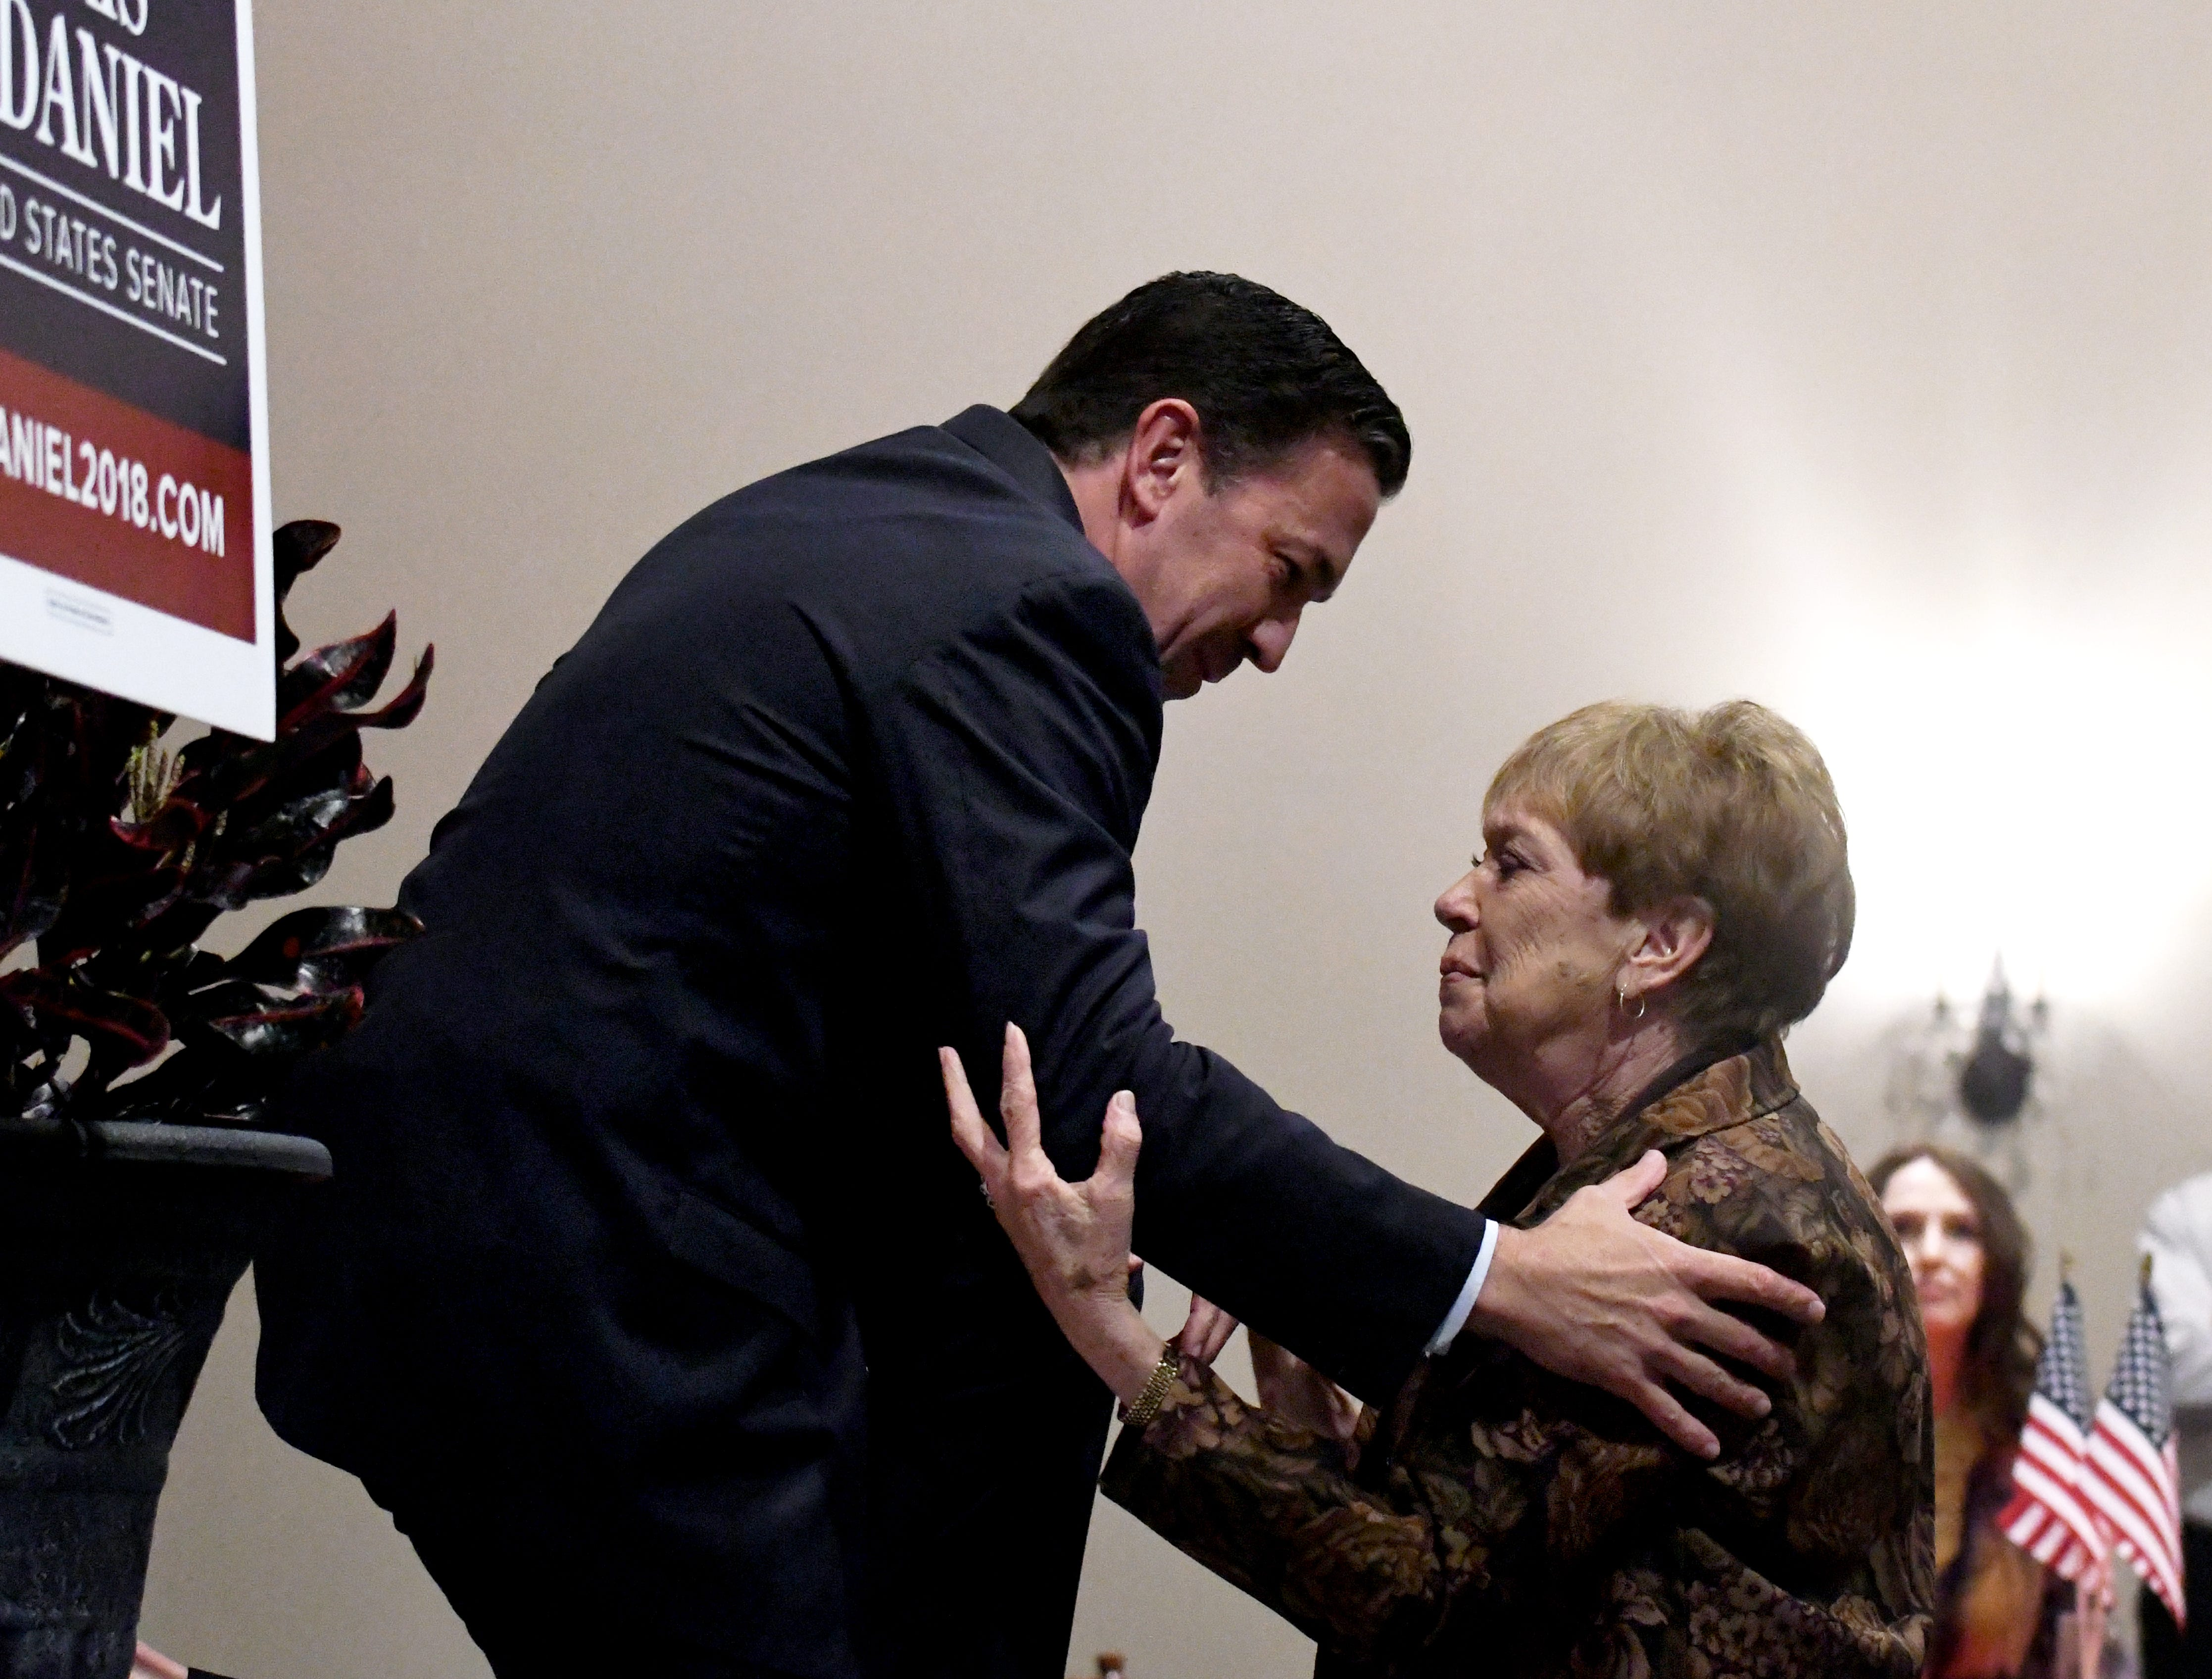 Republican Senate candidate Chris McDaniel is comforted by his mother, Charlotte, after he loosing in Mississippi's U.S. Senate race in Laurel on Tuesday, November 6, 2018. 